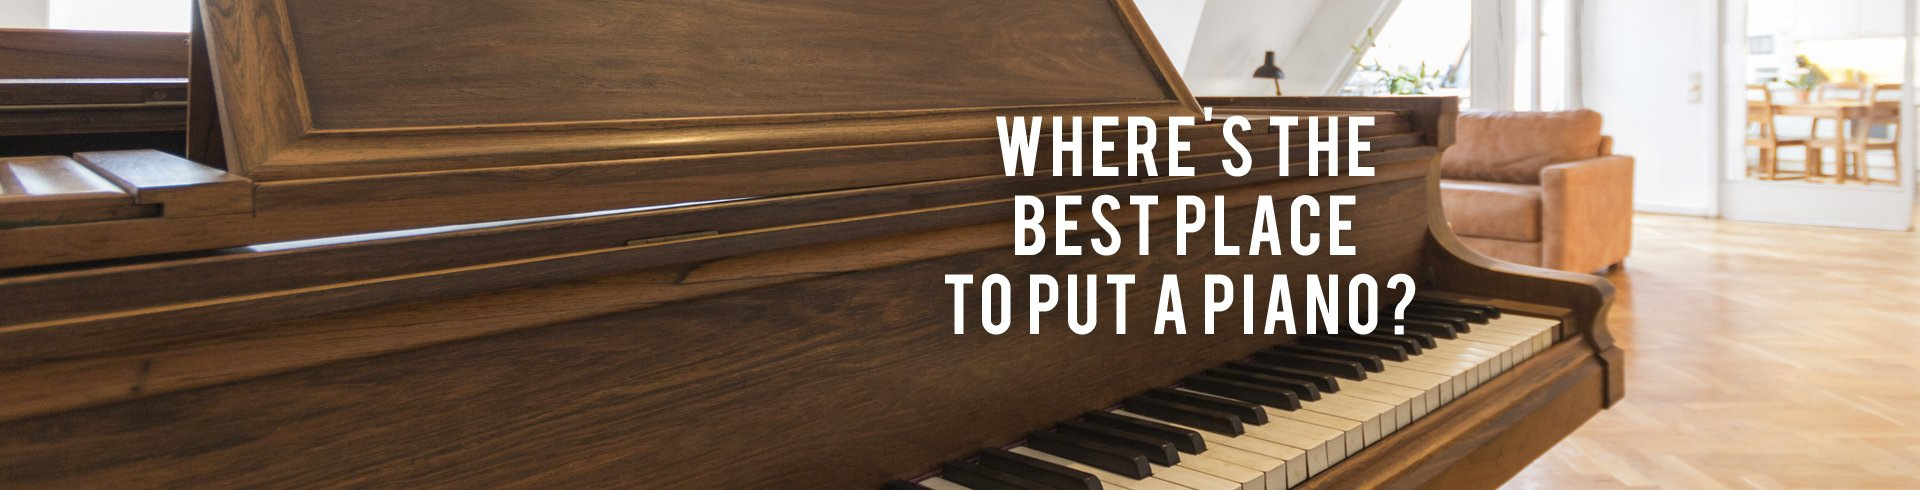 Where's The Best Place to Put a Piano? | RC Willey Blog